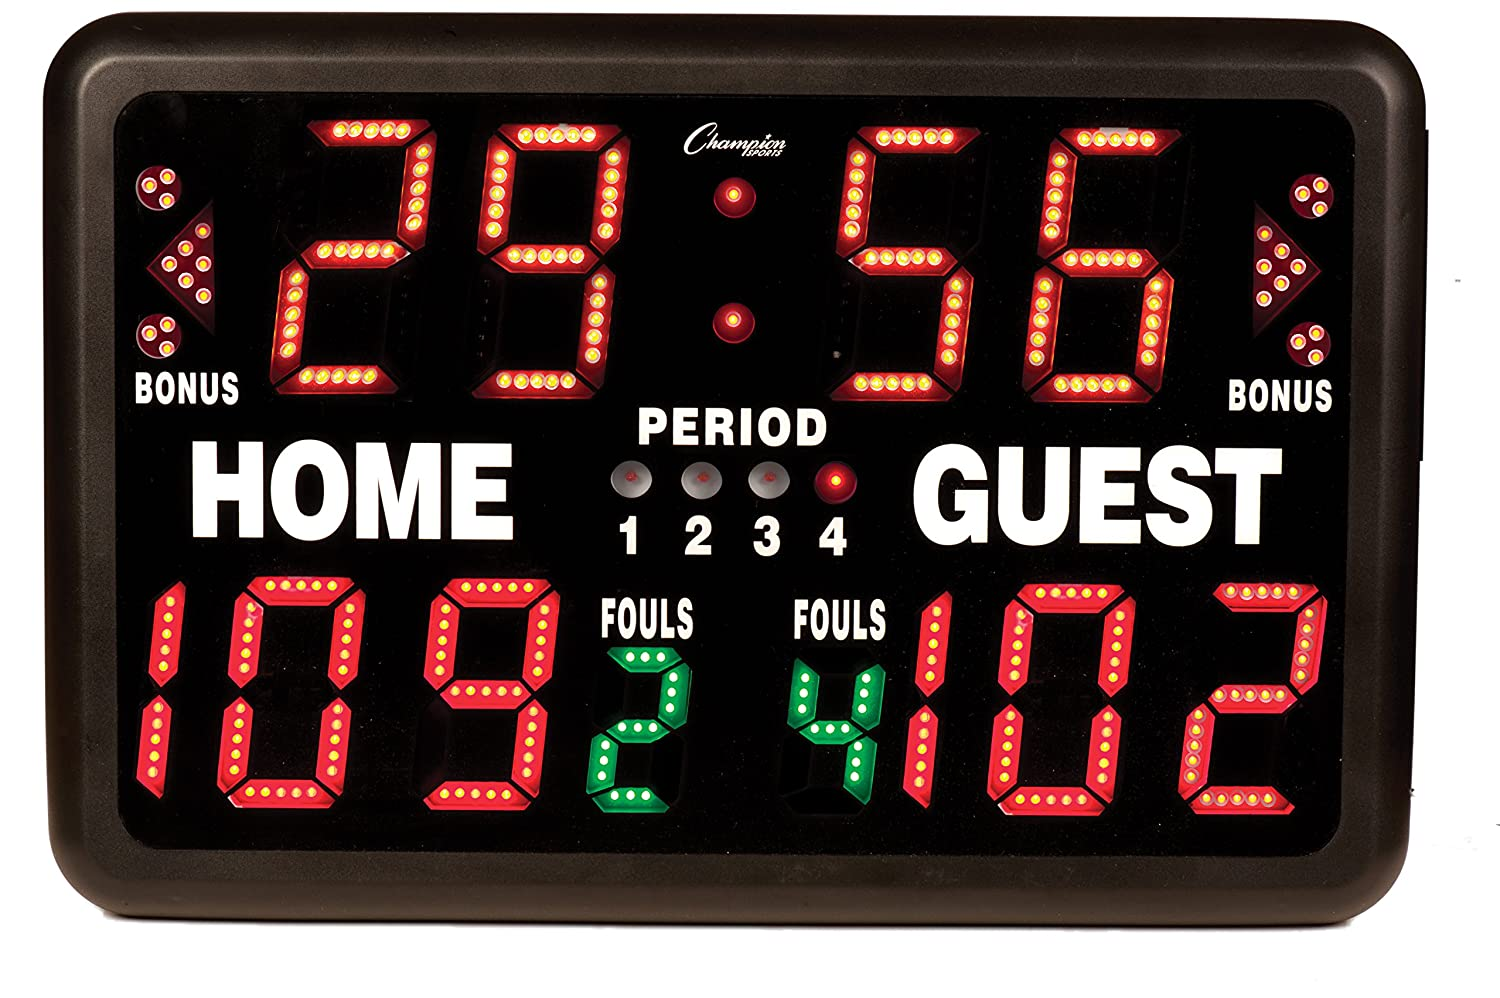 Champion Sports MultiSport Tabletop Indoor Electronic Scoreboard with Remote Control Included